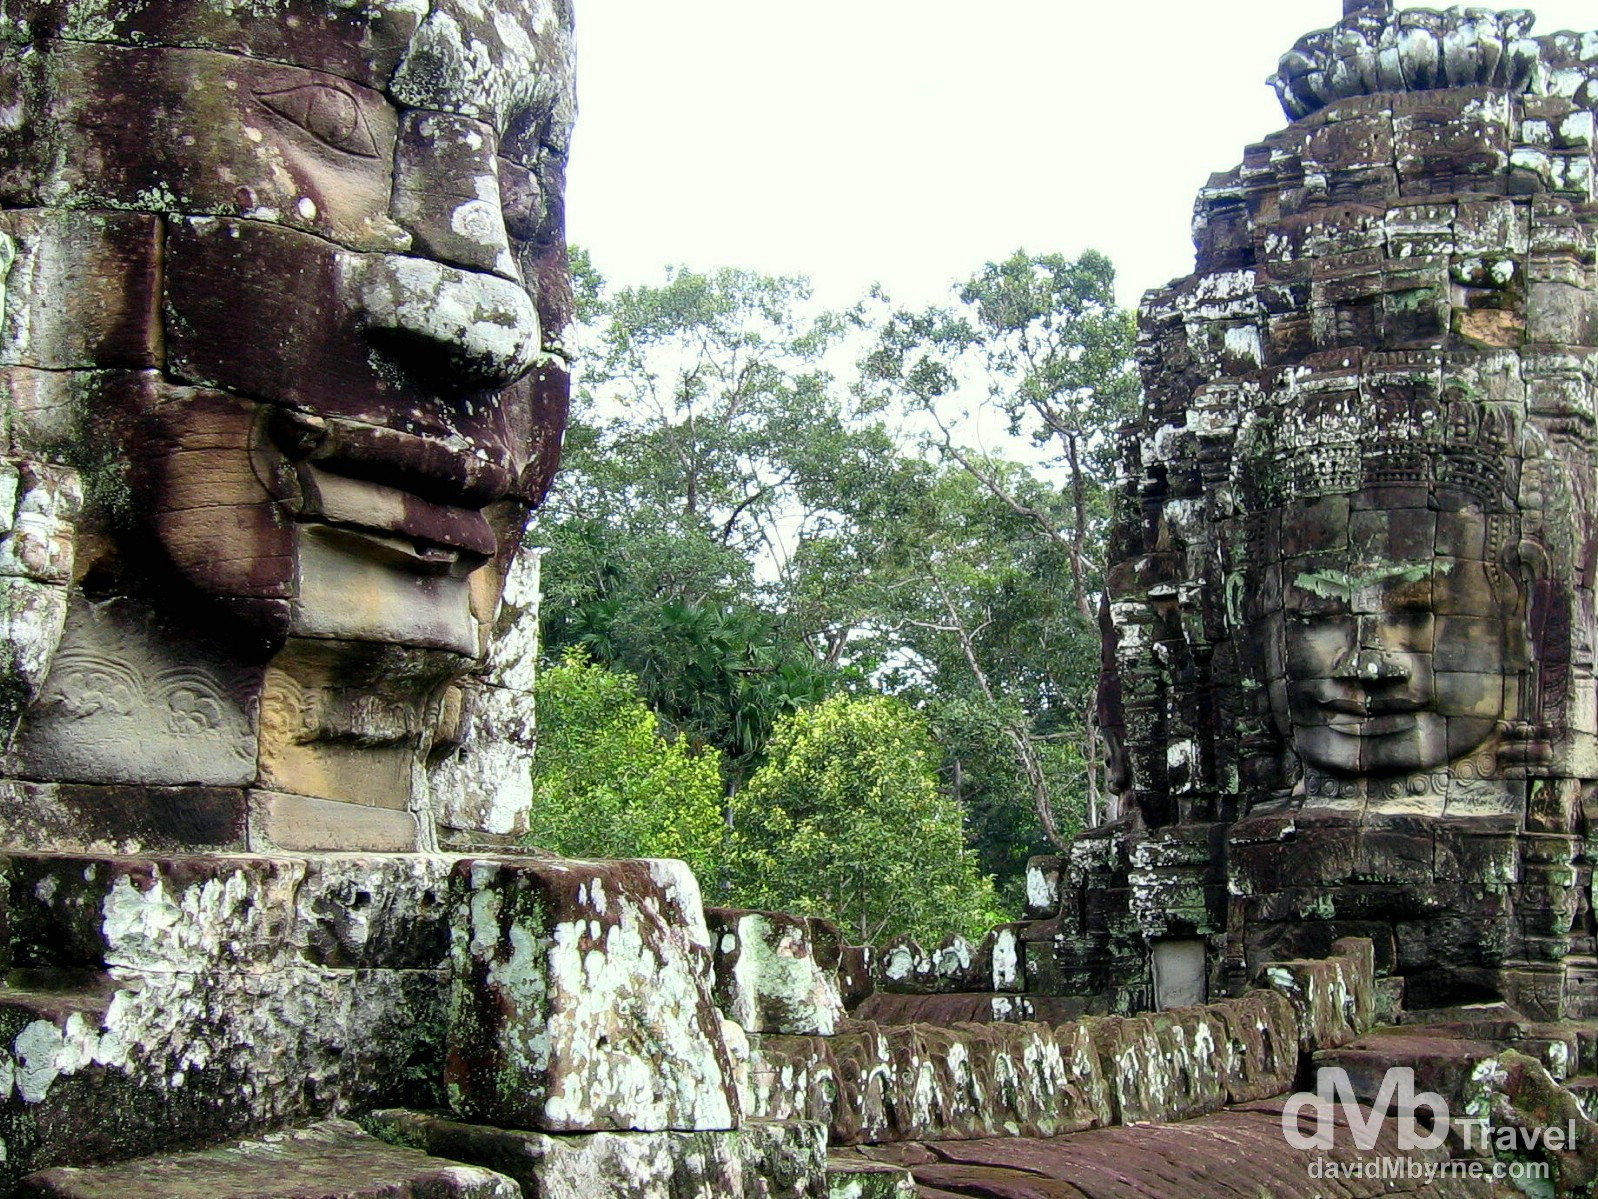 The faces of the temple Bayon in Angkor Thom, Angkor, Cambodia. September 20th, 2005.